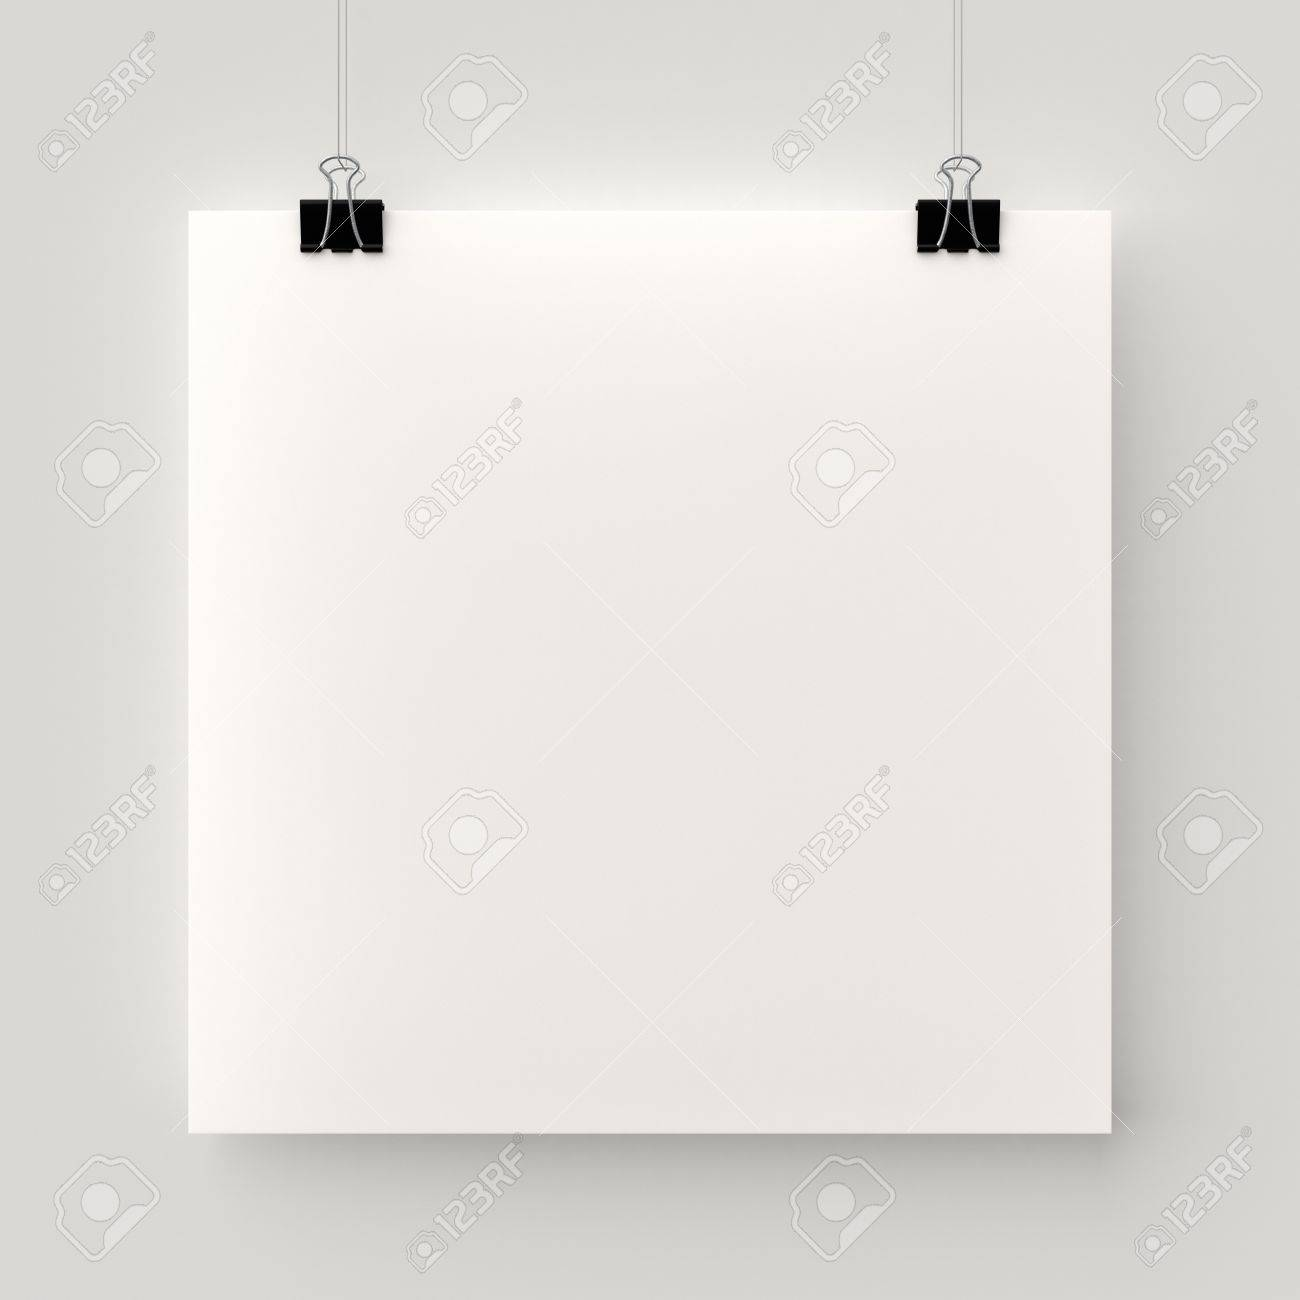 Poster Hanging On A Thread With Two Black Clips Blank Square Sheet Of  Paper Against